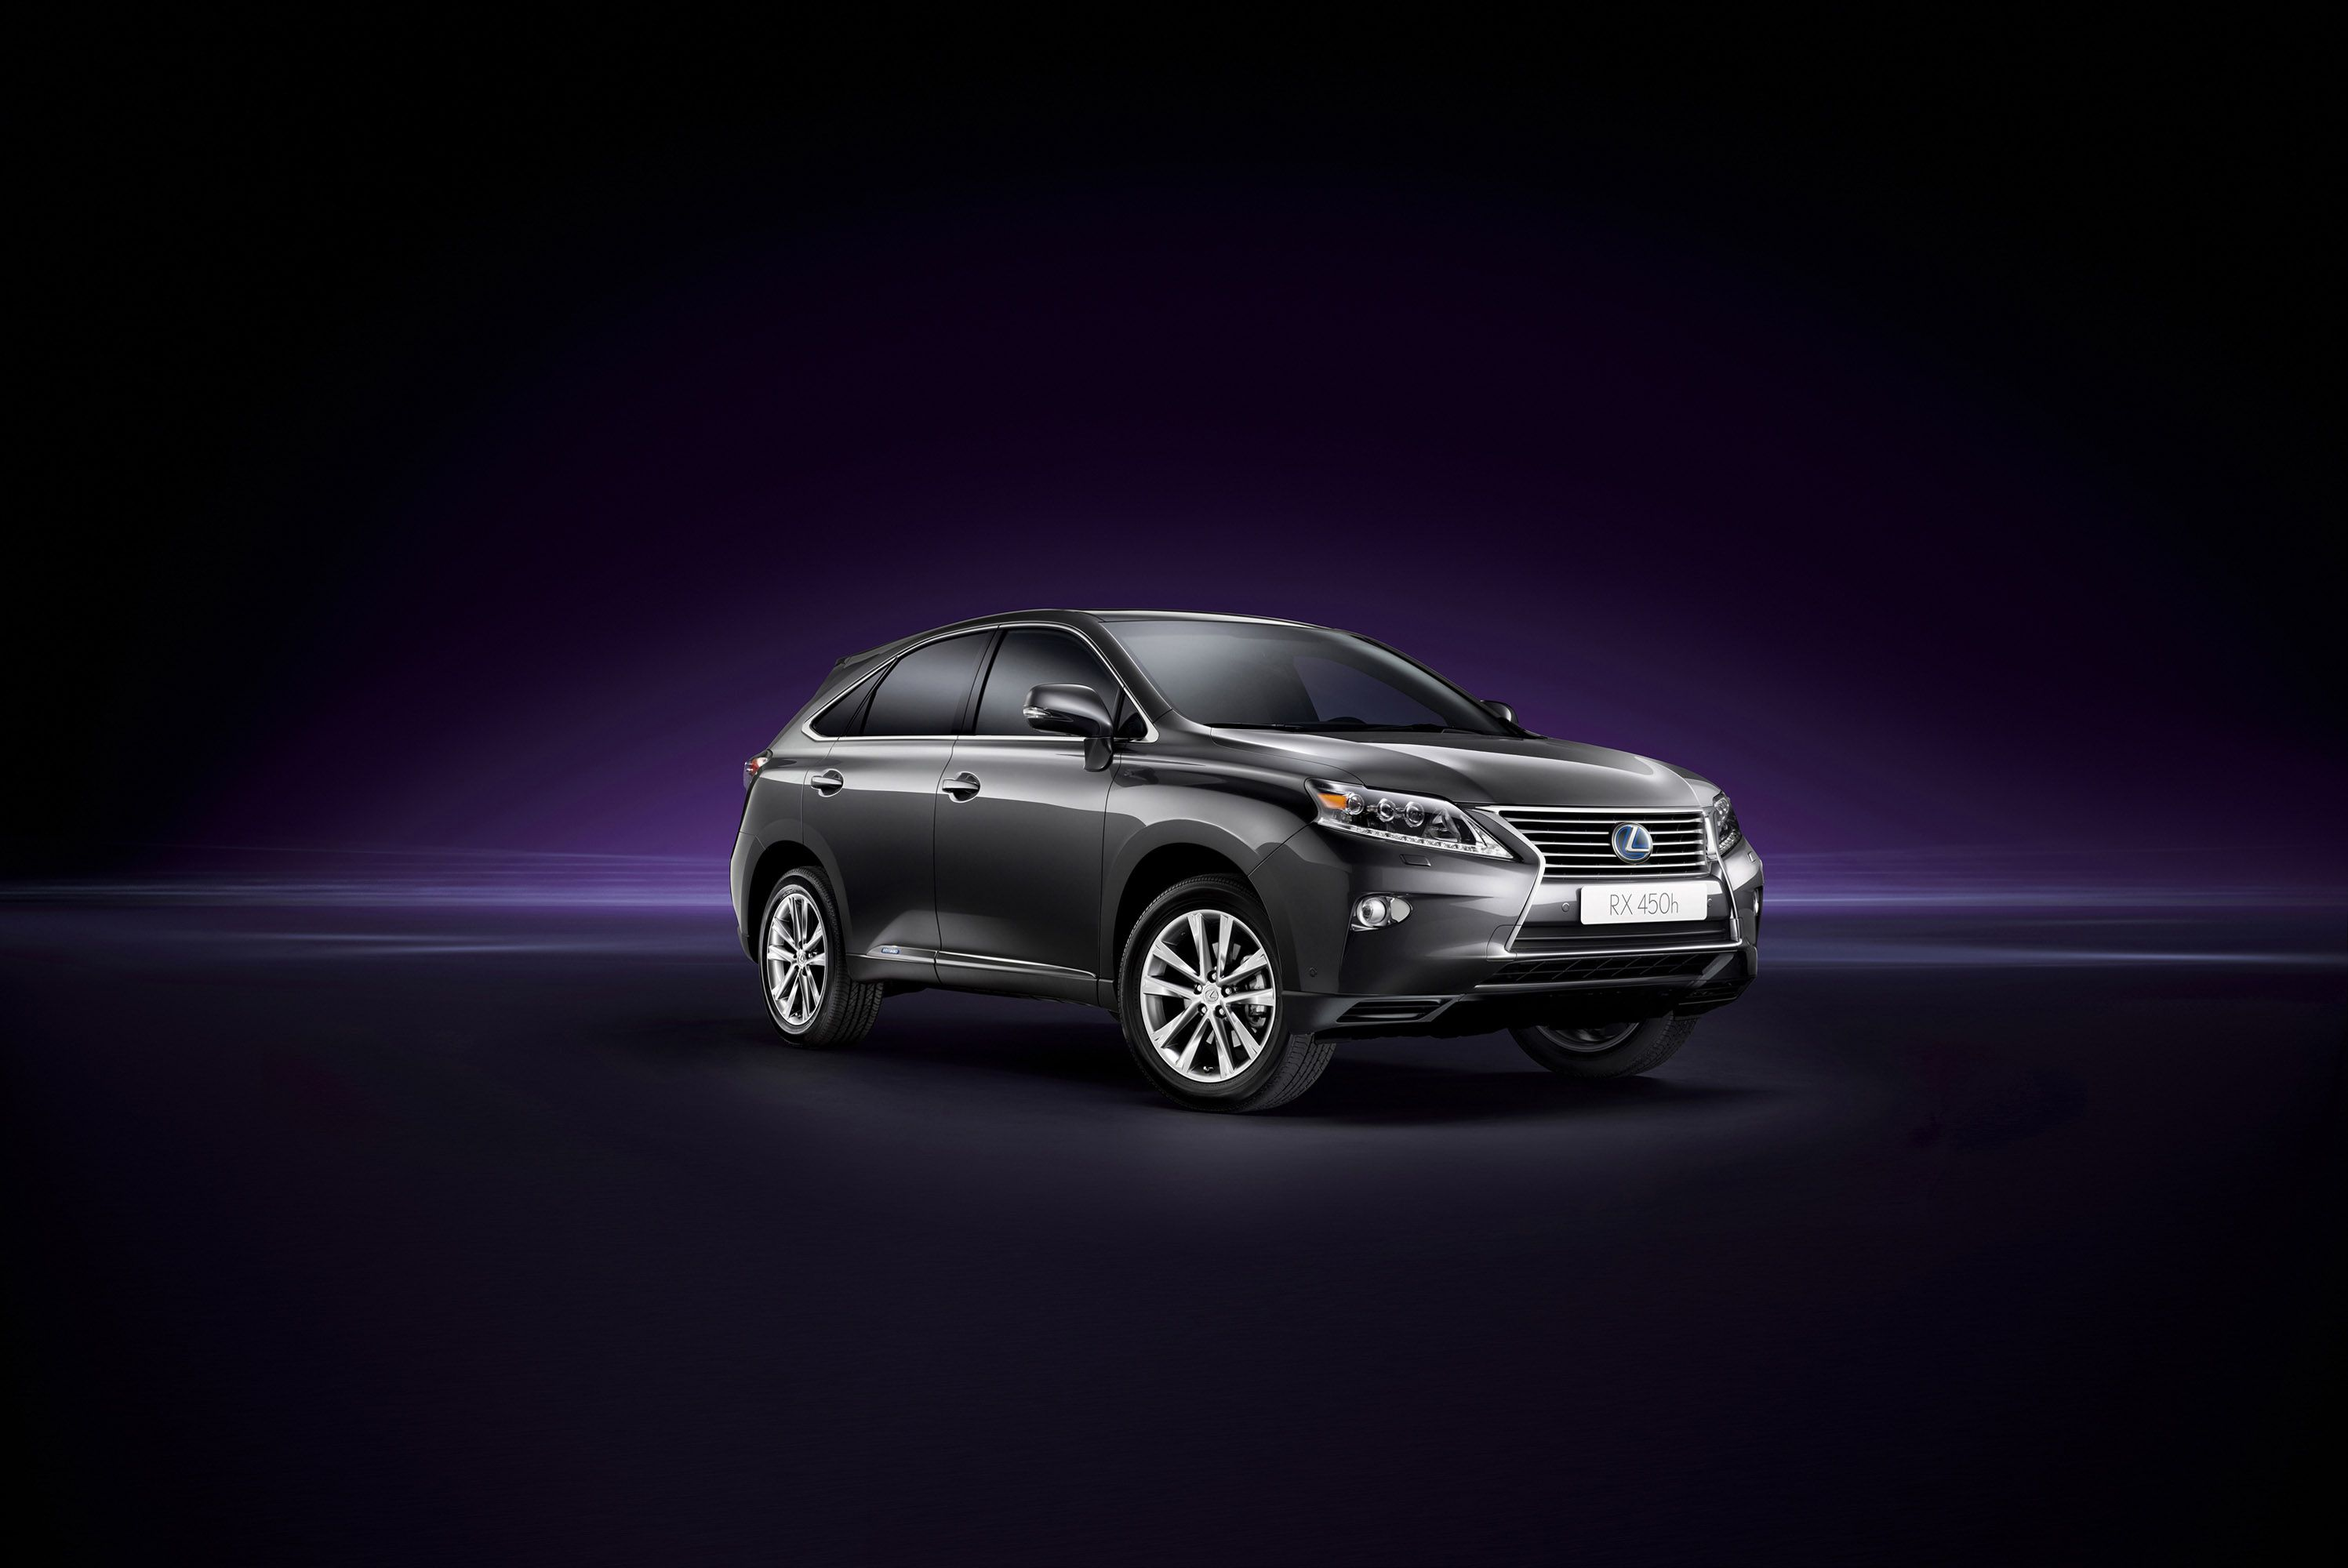 2014 lexus rx 450 top 10 best gas mileage suvs 2014 nissan rh pinterest com